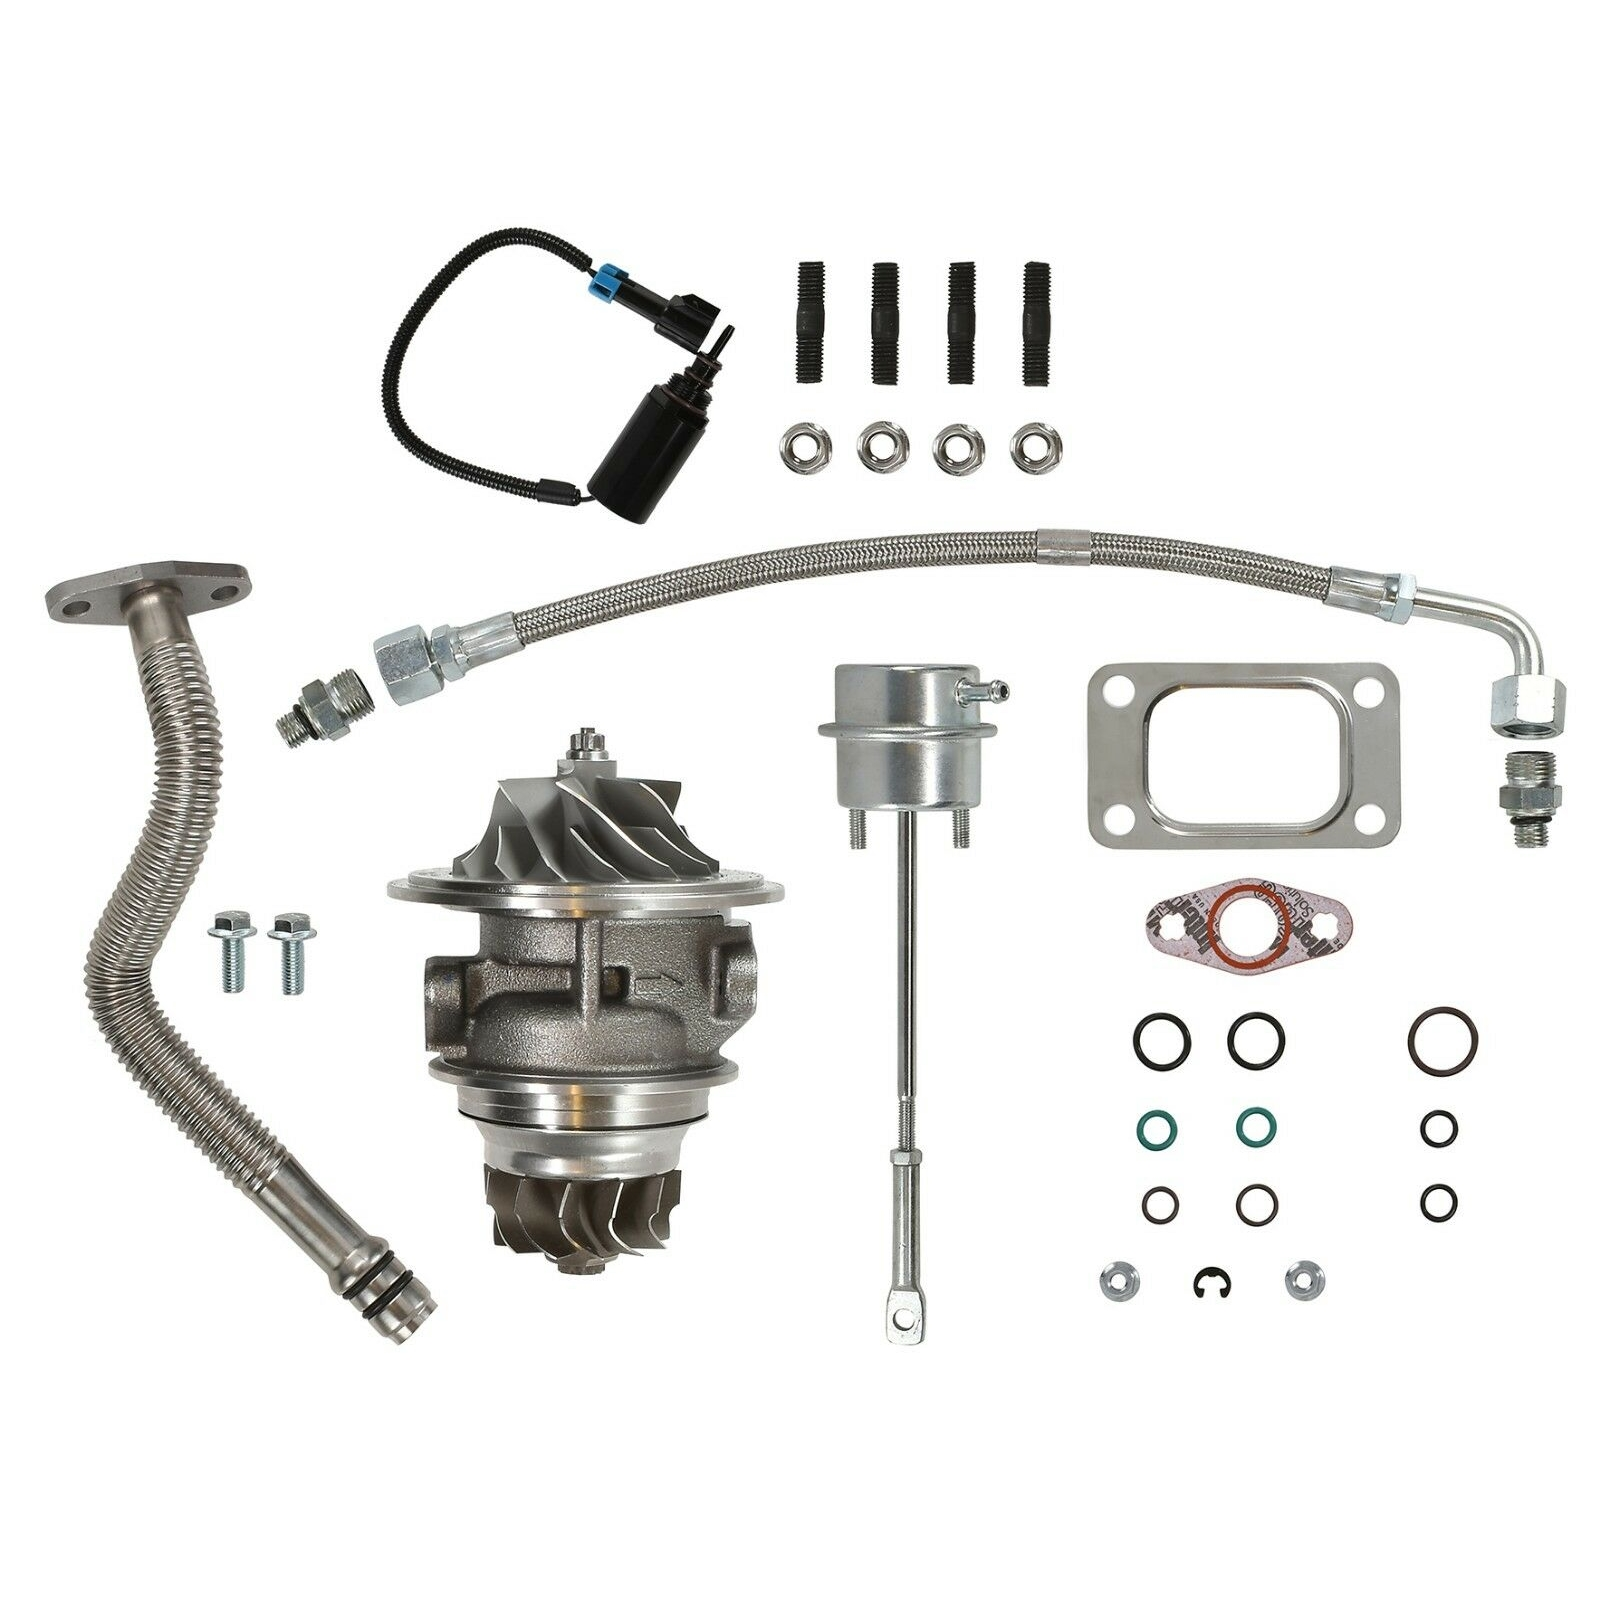 HE351CW Master Turbo Rebuild Kit Cast CHRA For 04.5-07 5.9L ISB Dodge Ram Cummins Diesel